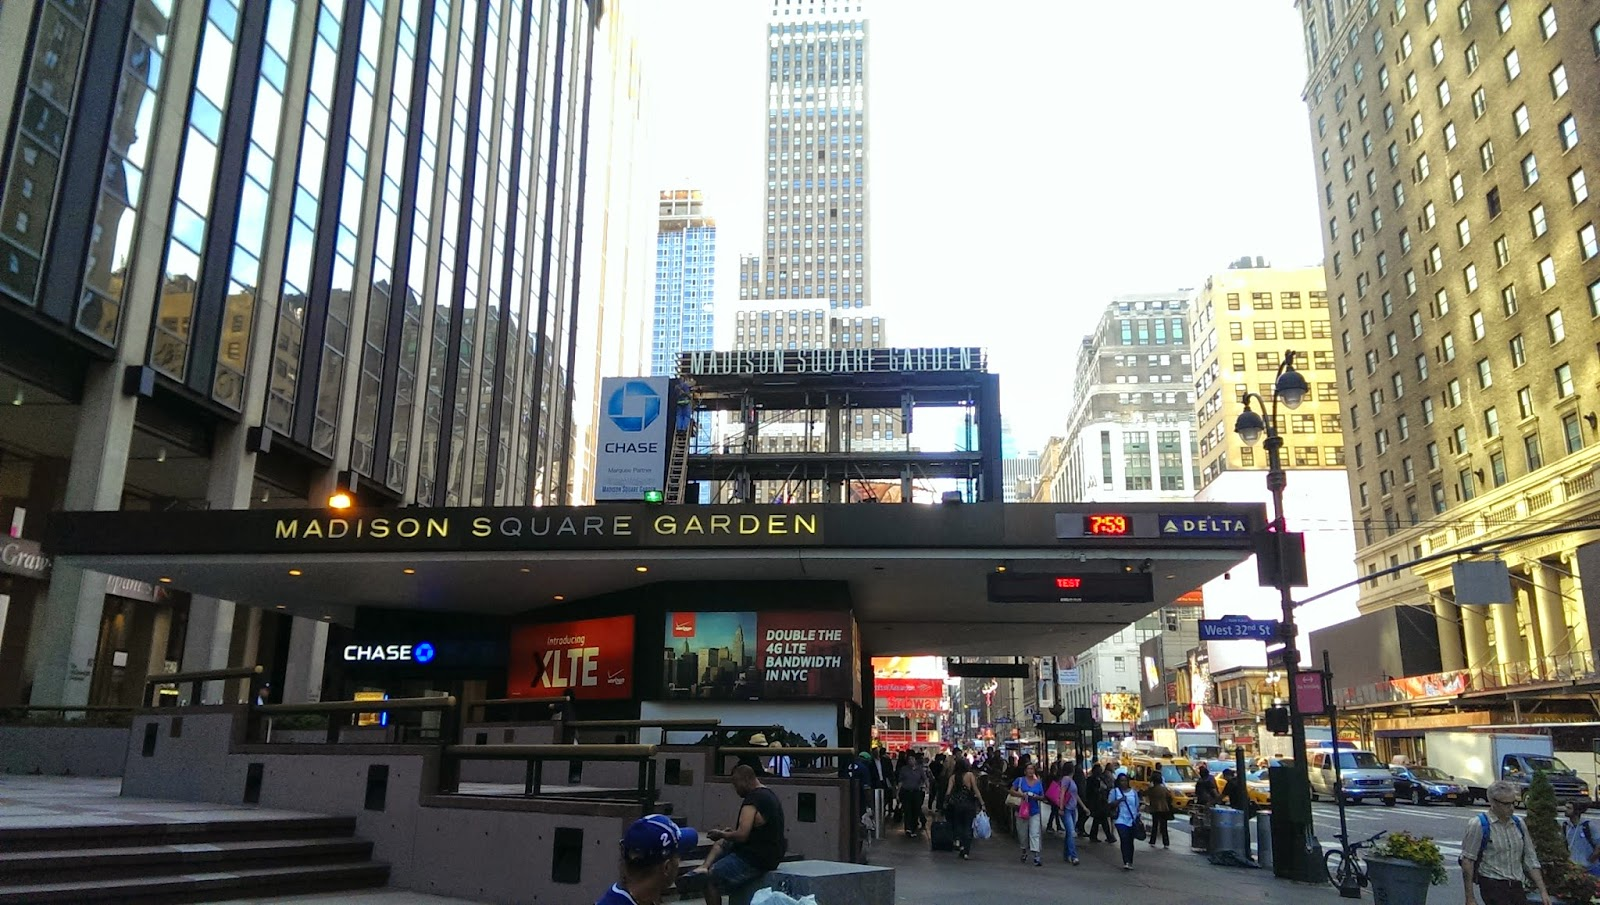 madison square garden screen construction